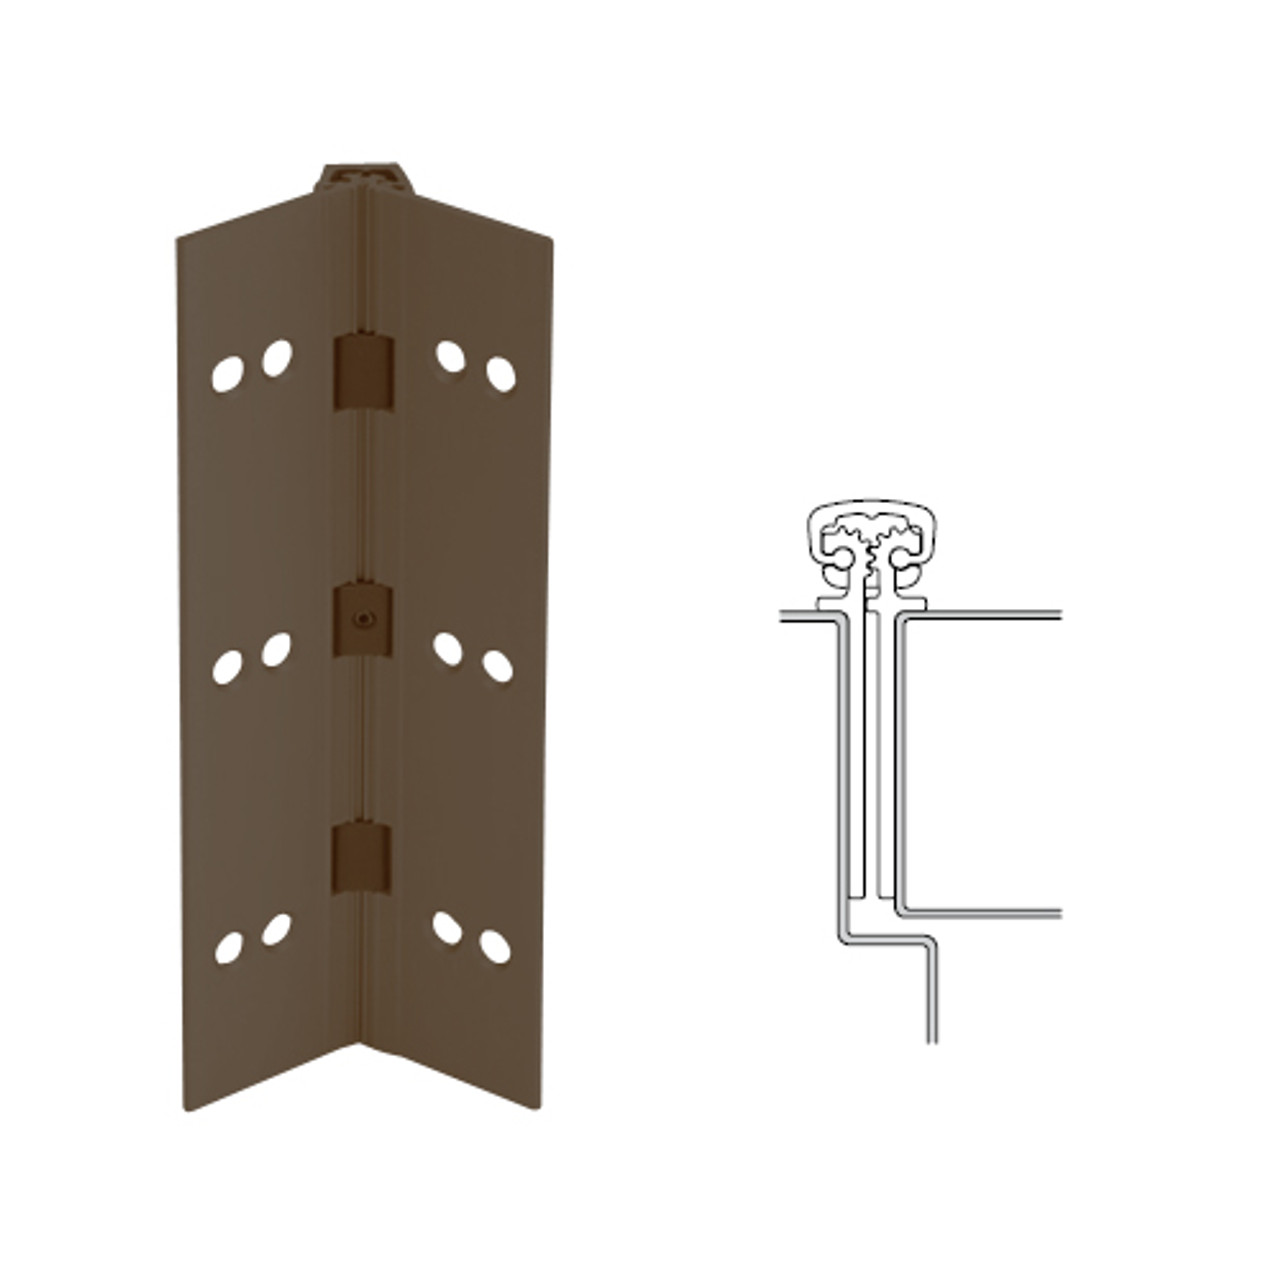 027XY-313AN-83 IVES Full Mortise Continuous Geared Hinges in Dark Bronze Anodized